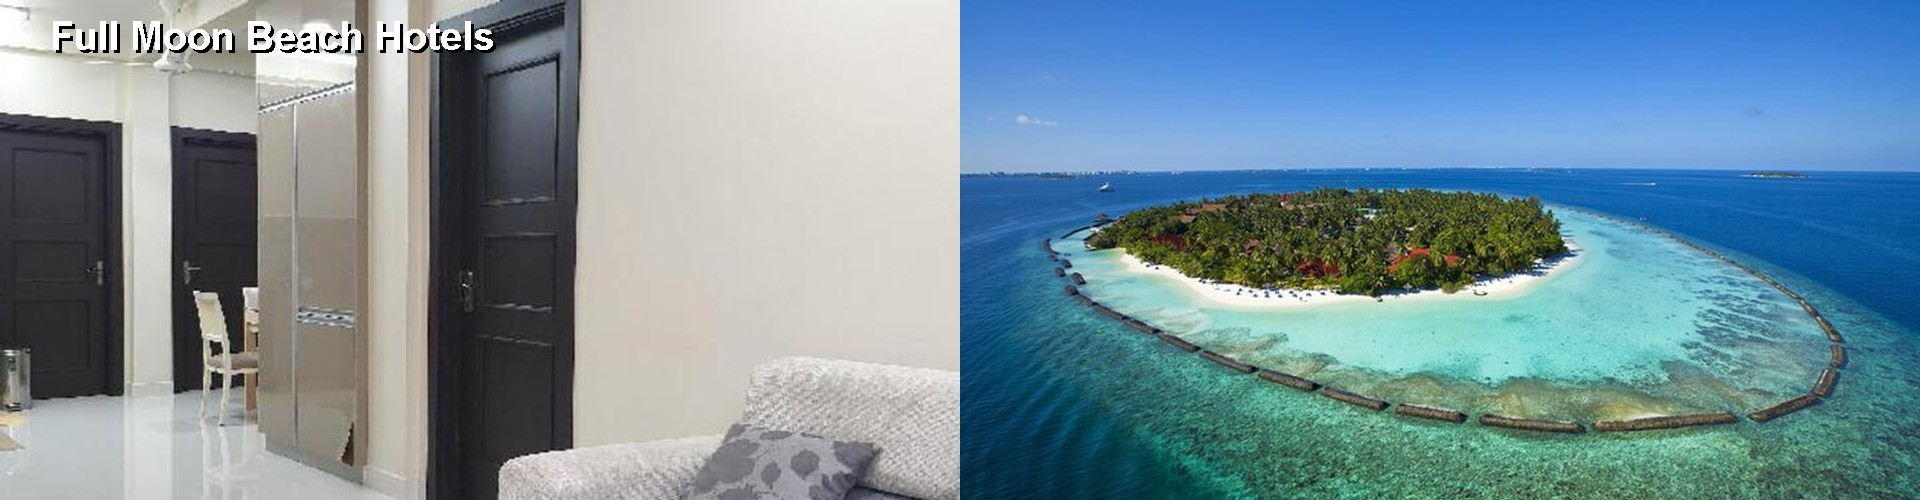 5 Best Hotels near Full Moon Beach